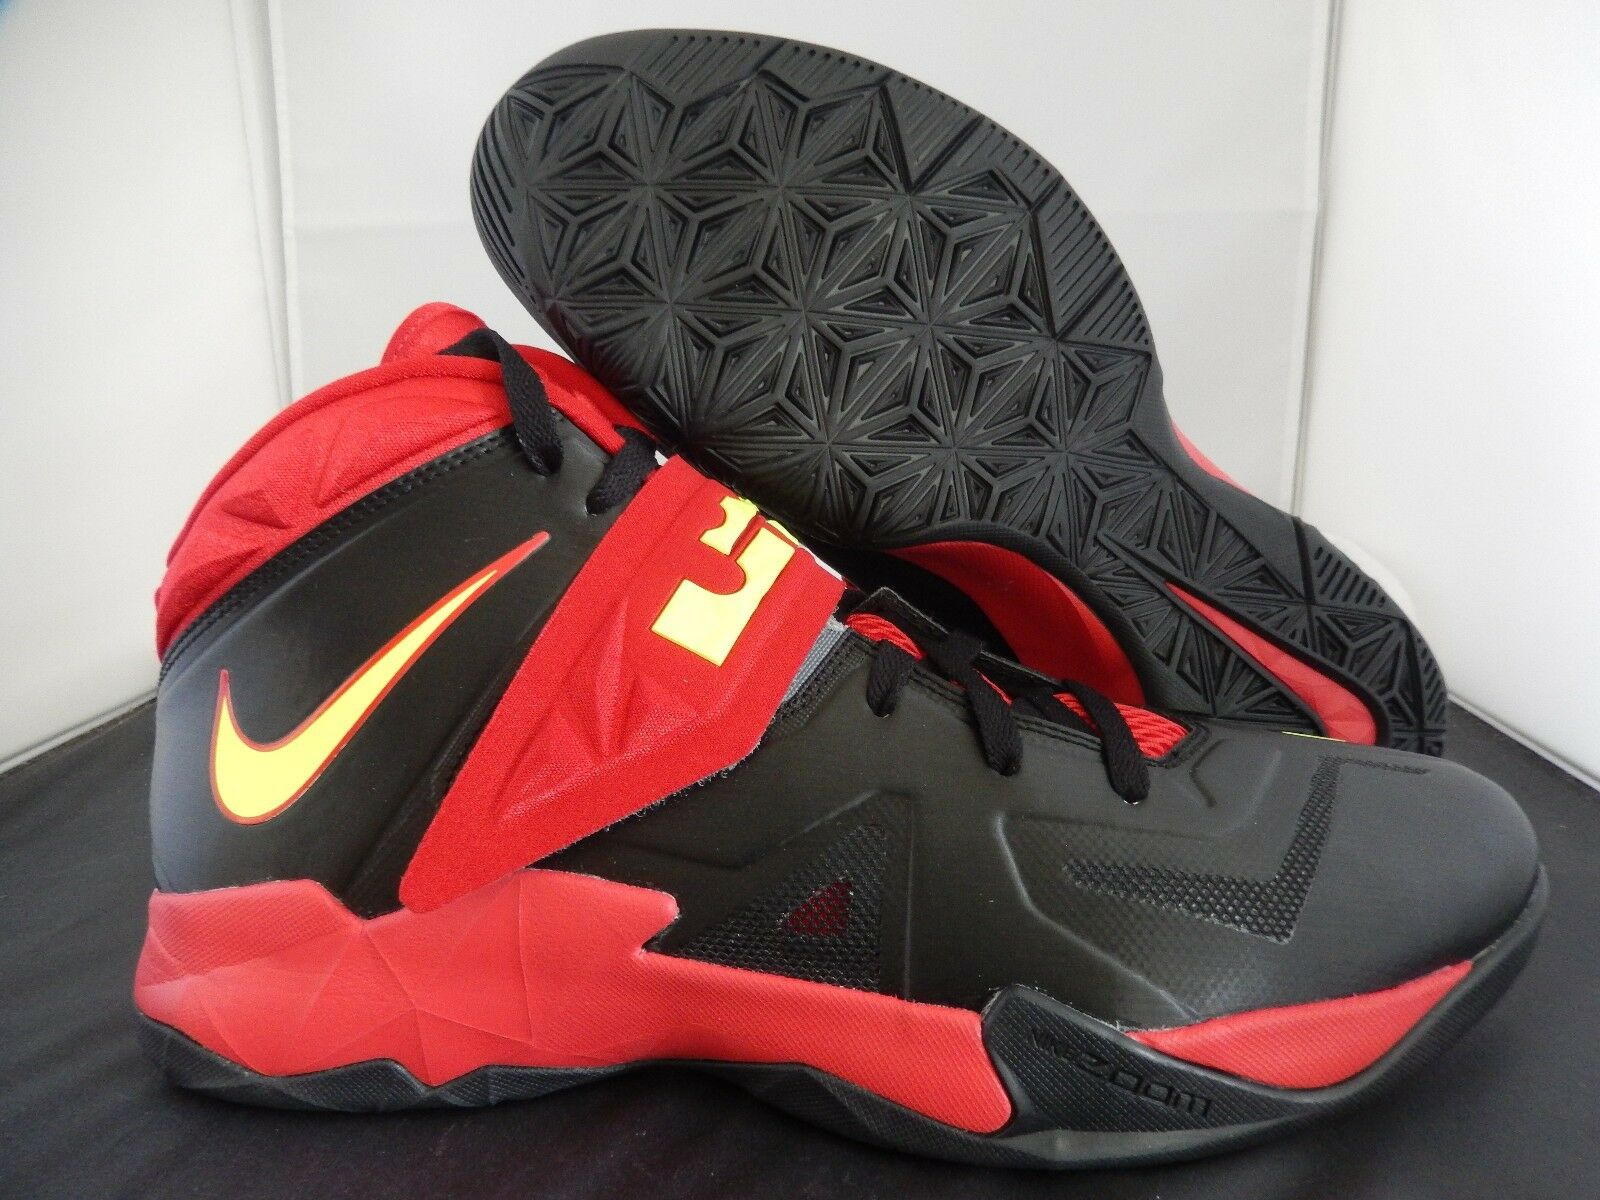 NIKE ZOOM SOLDIER VII 7 ID BLACK-RED-VOLT SZ 12.5 [626958-991]